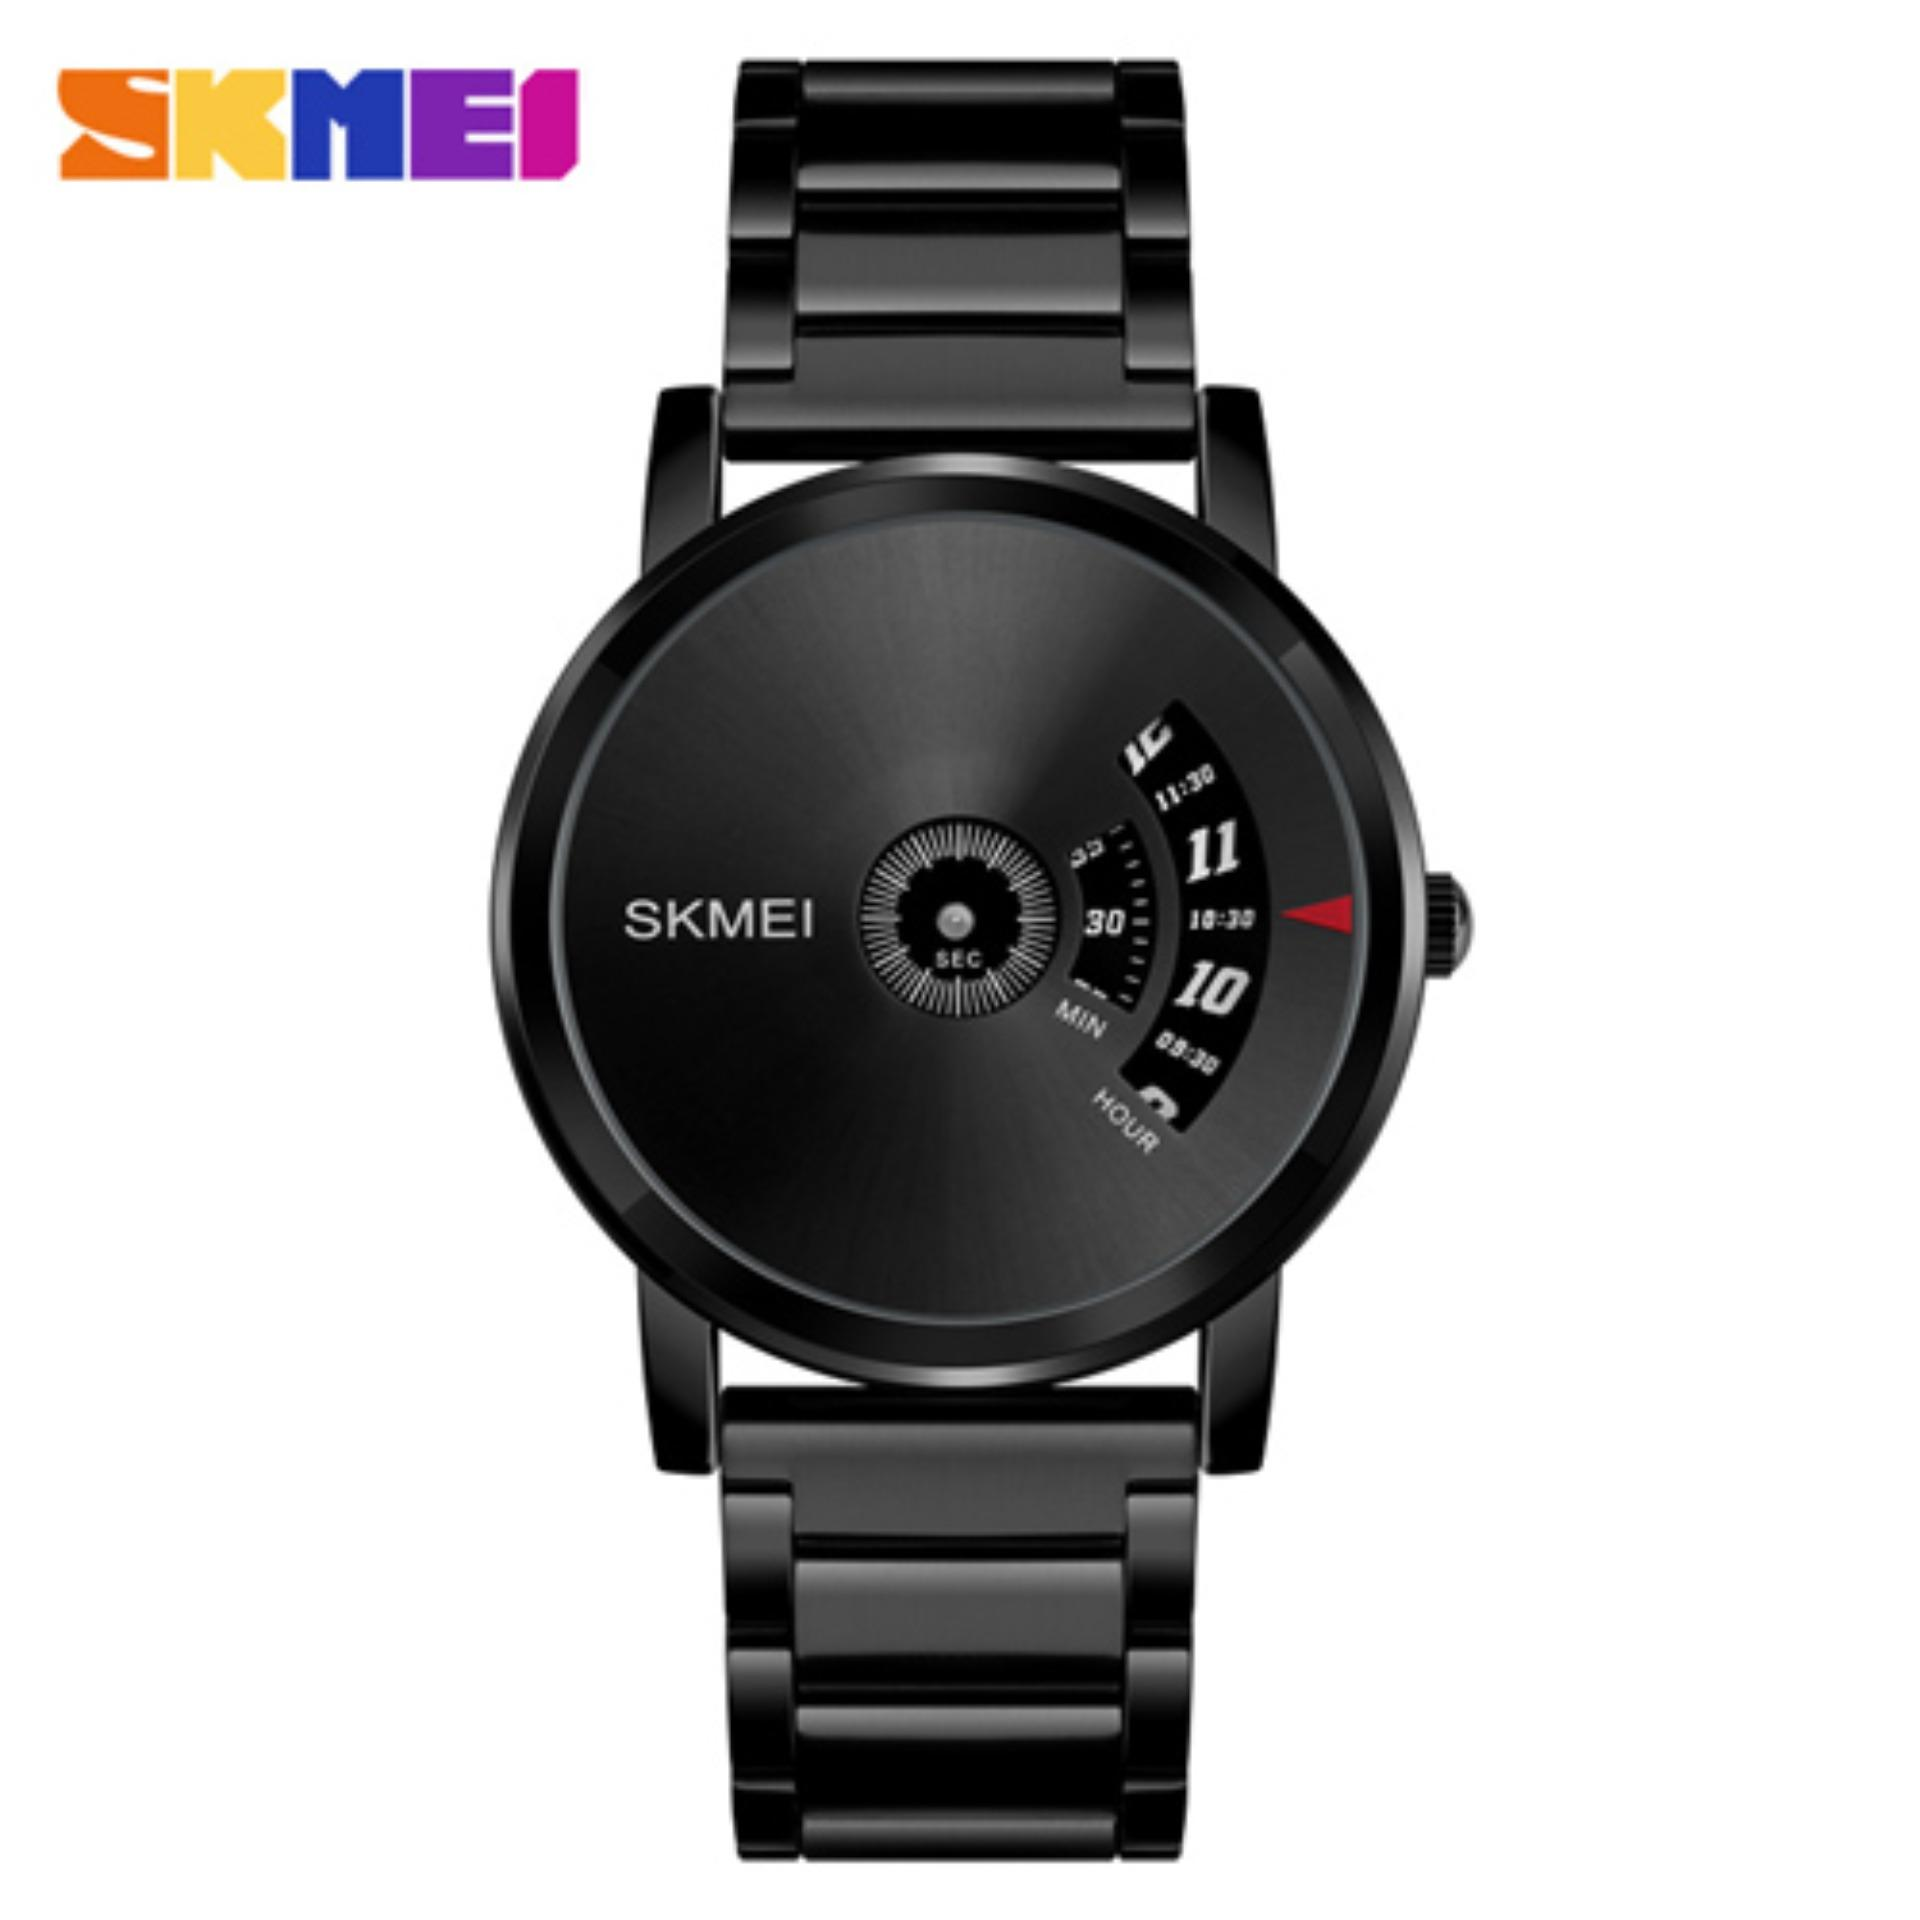 Jam Tangan Fashion Pria Skmei Analog Unik 1260 Stainless - Black